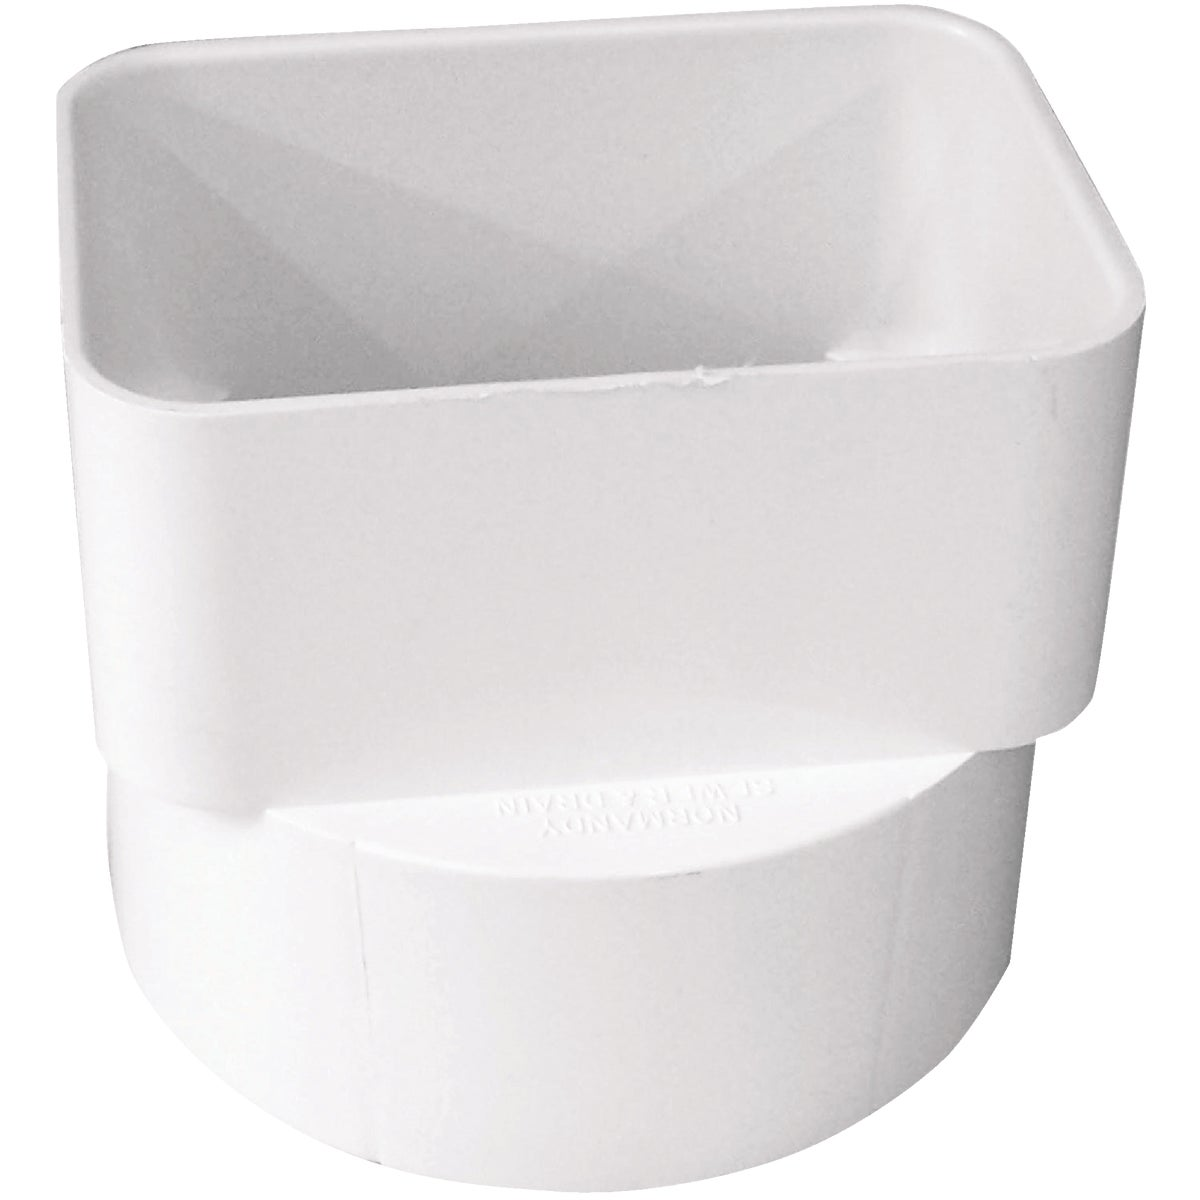 3X4X4 DOWNSPOUT ADAPTER - S45344 by Genova Inc